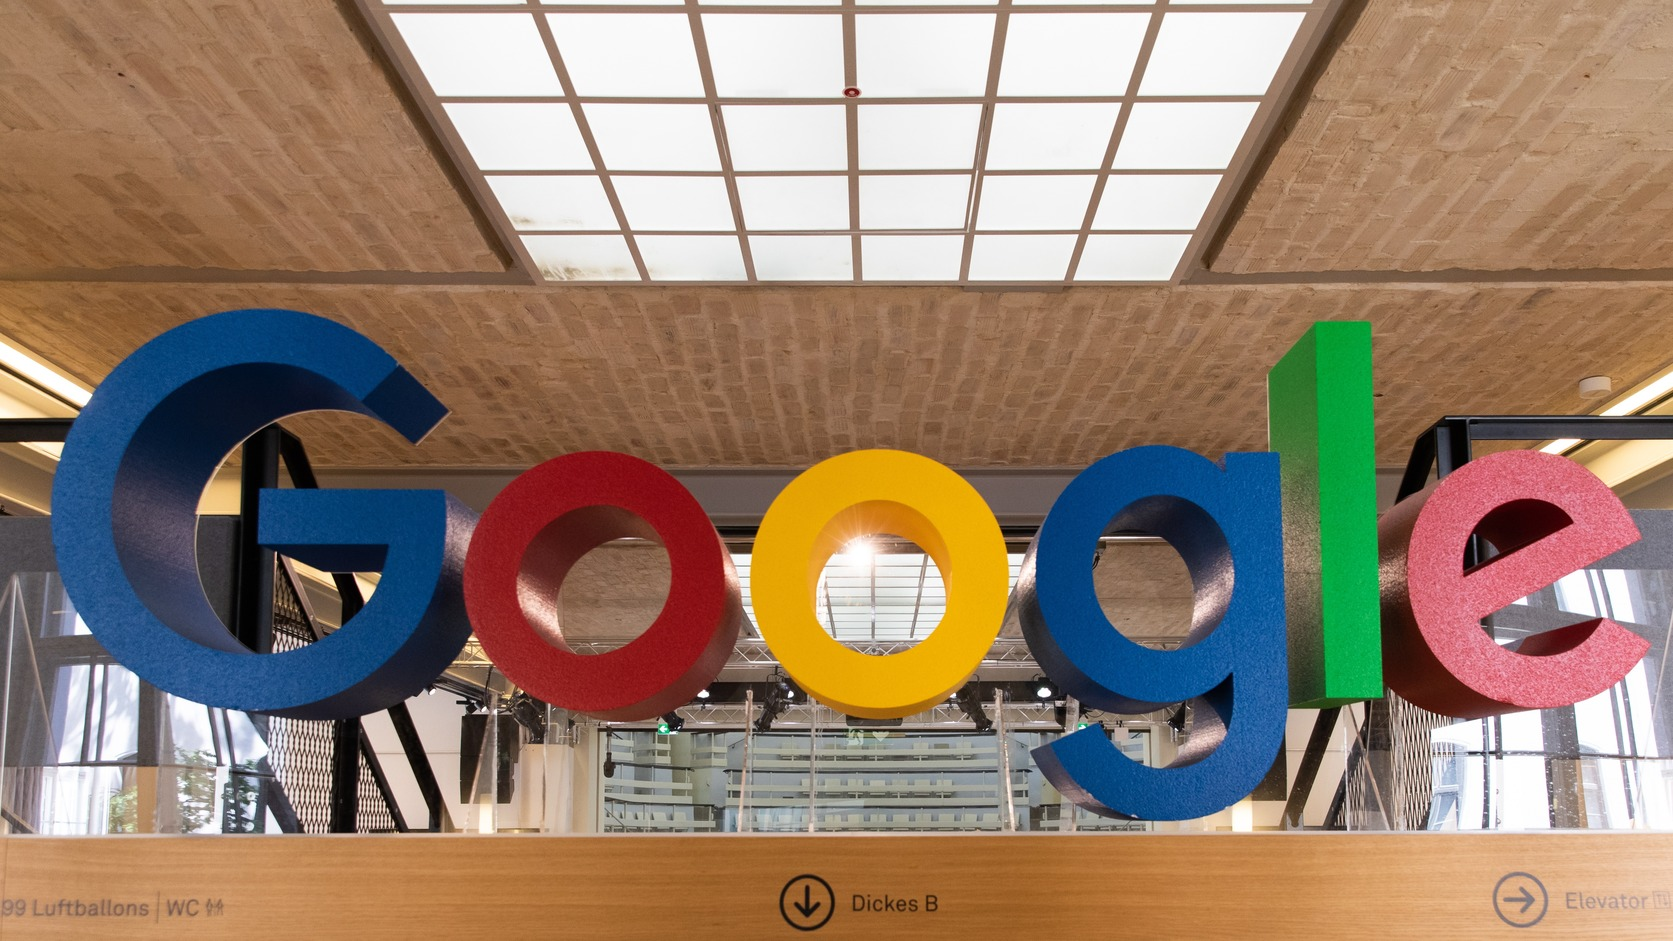 epa07670237 A Google logo is displayed at the Google offices in Berlin, Germany, 24 June 2019.  EPA/HAYOUNG JEON